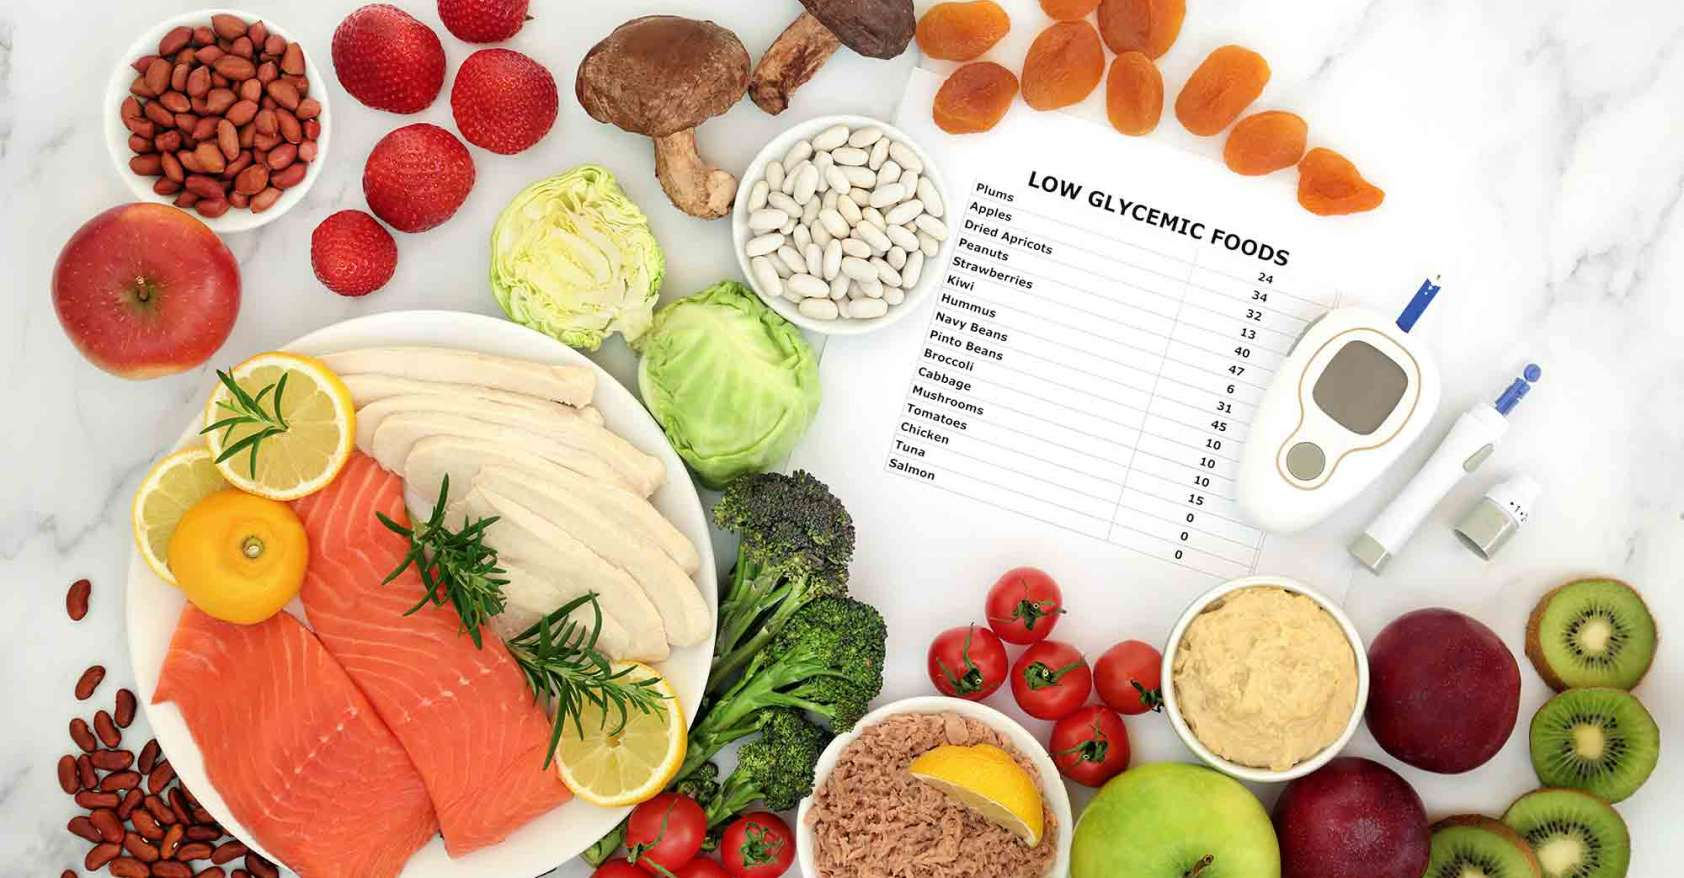 Low GI diet food with blood sugar testing equipment diabetes type 1